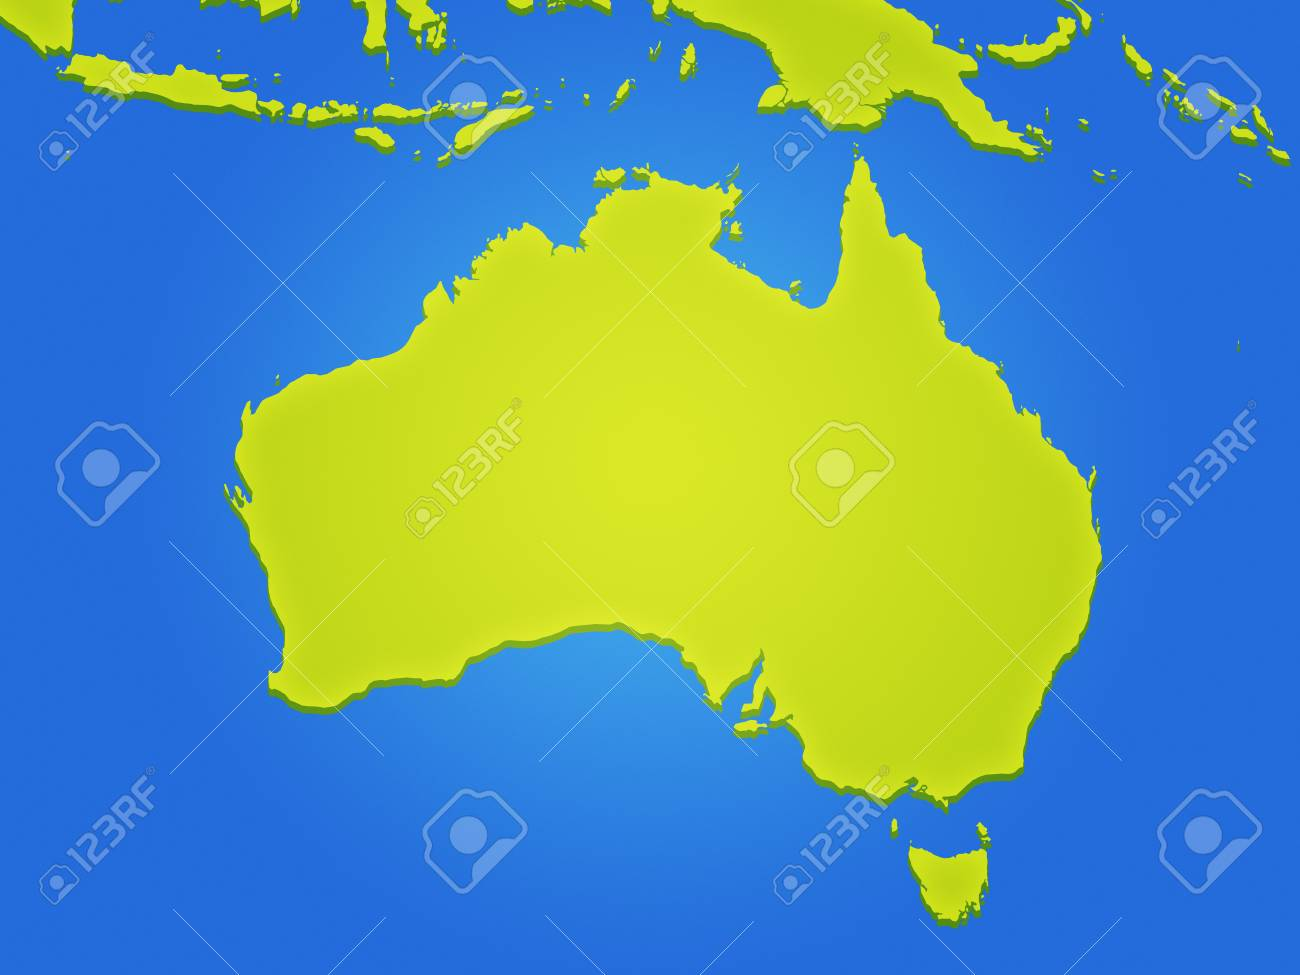 Simple Map Of Australia.Simple Coloured Map Of Australia Stock Photo Picture And Royalty